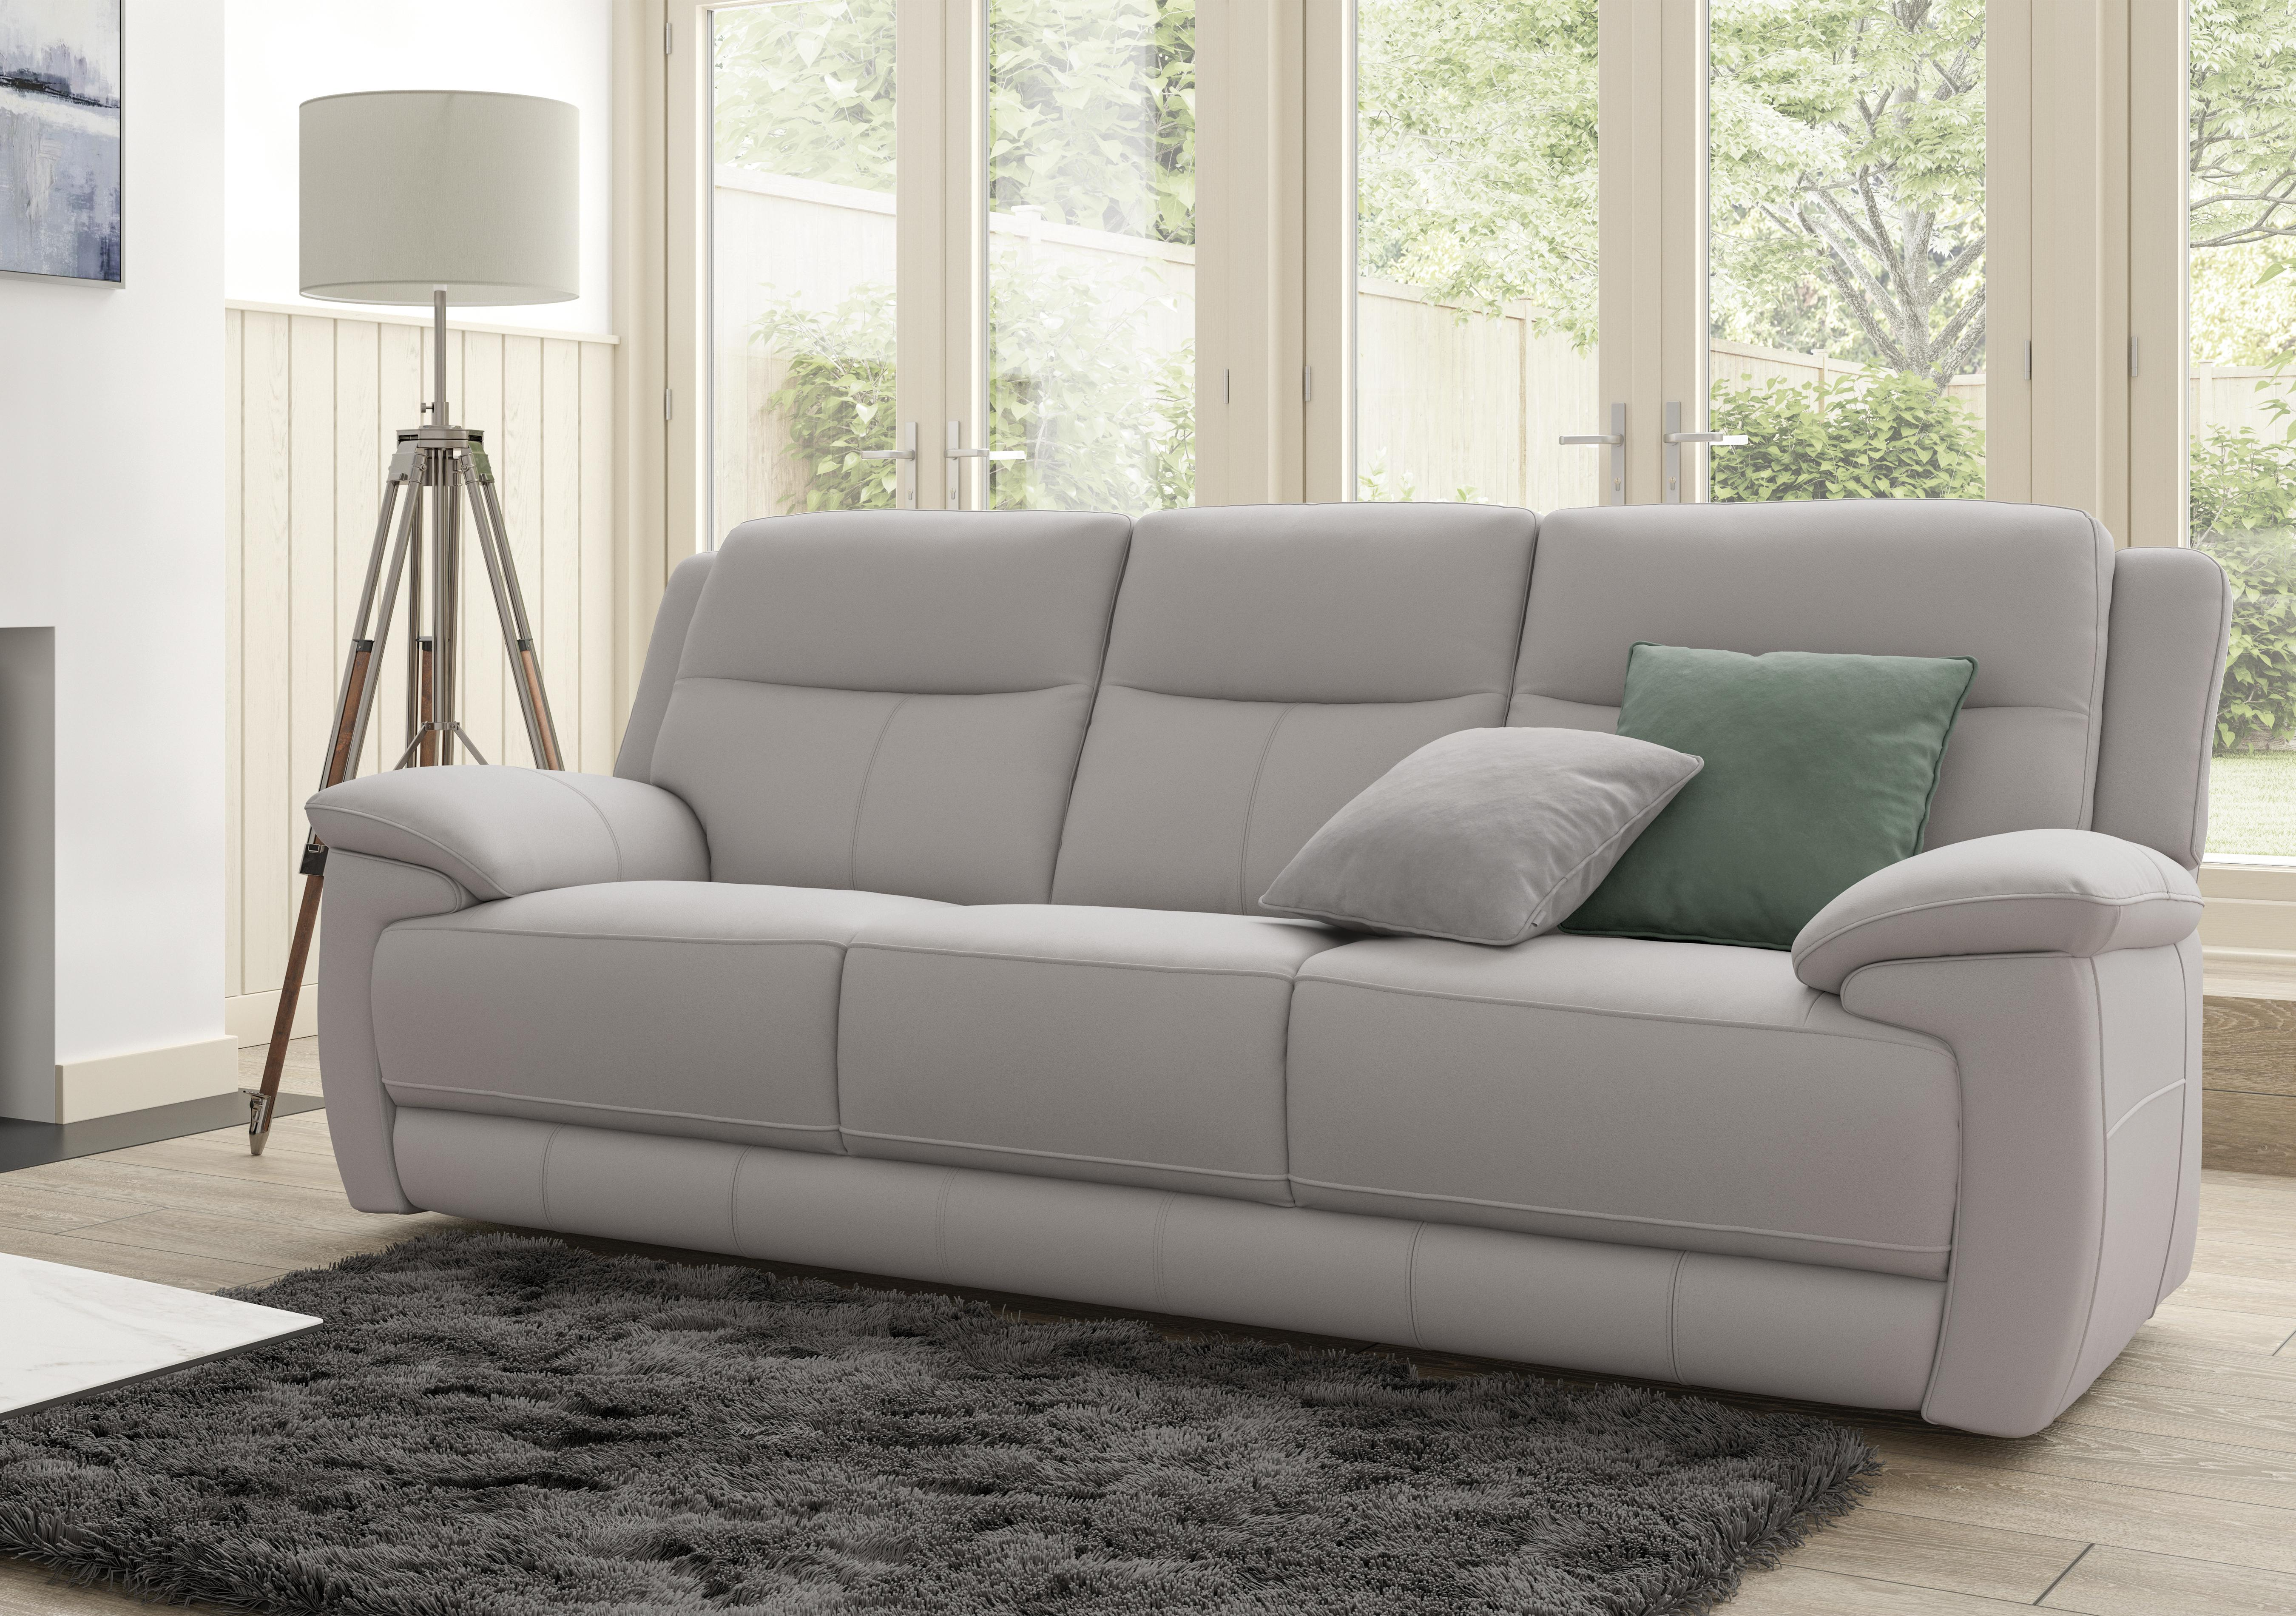 PRODZFRSP000000000014619_Touch_3-seater-sofa__lifestyle